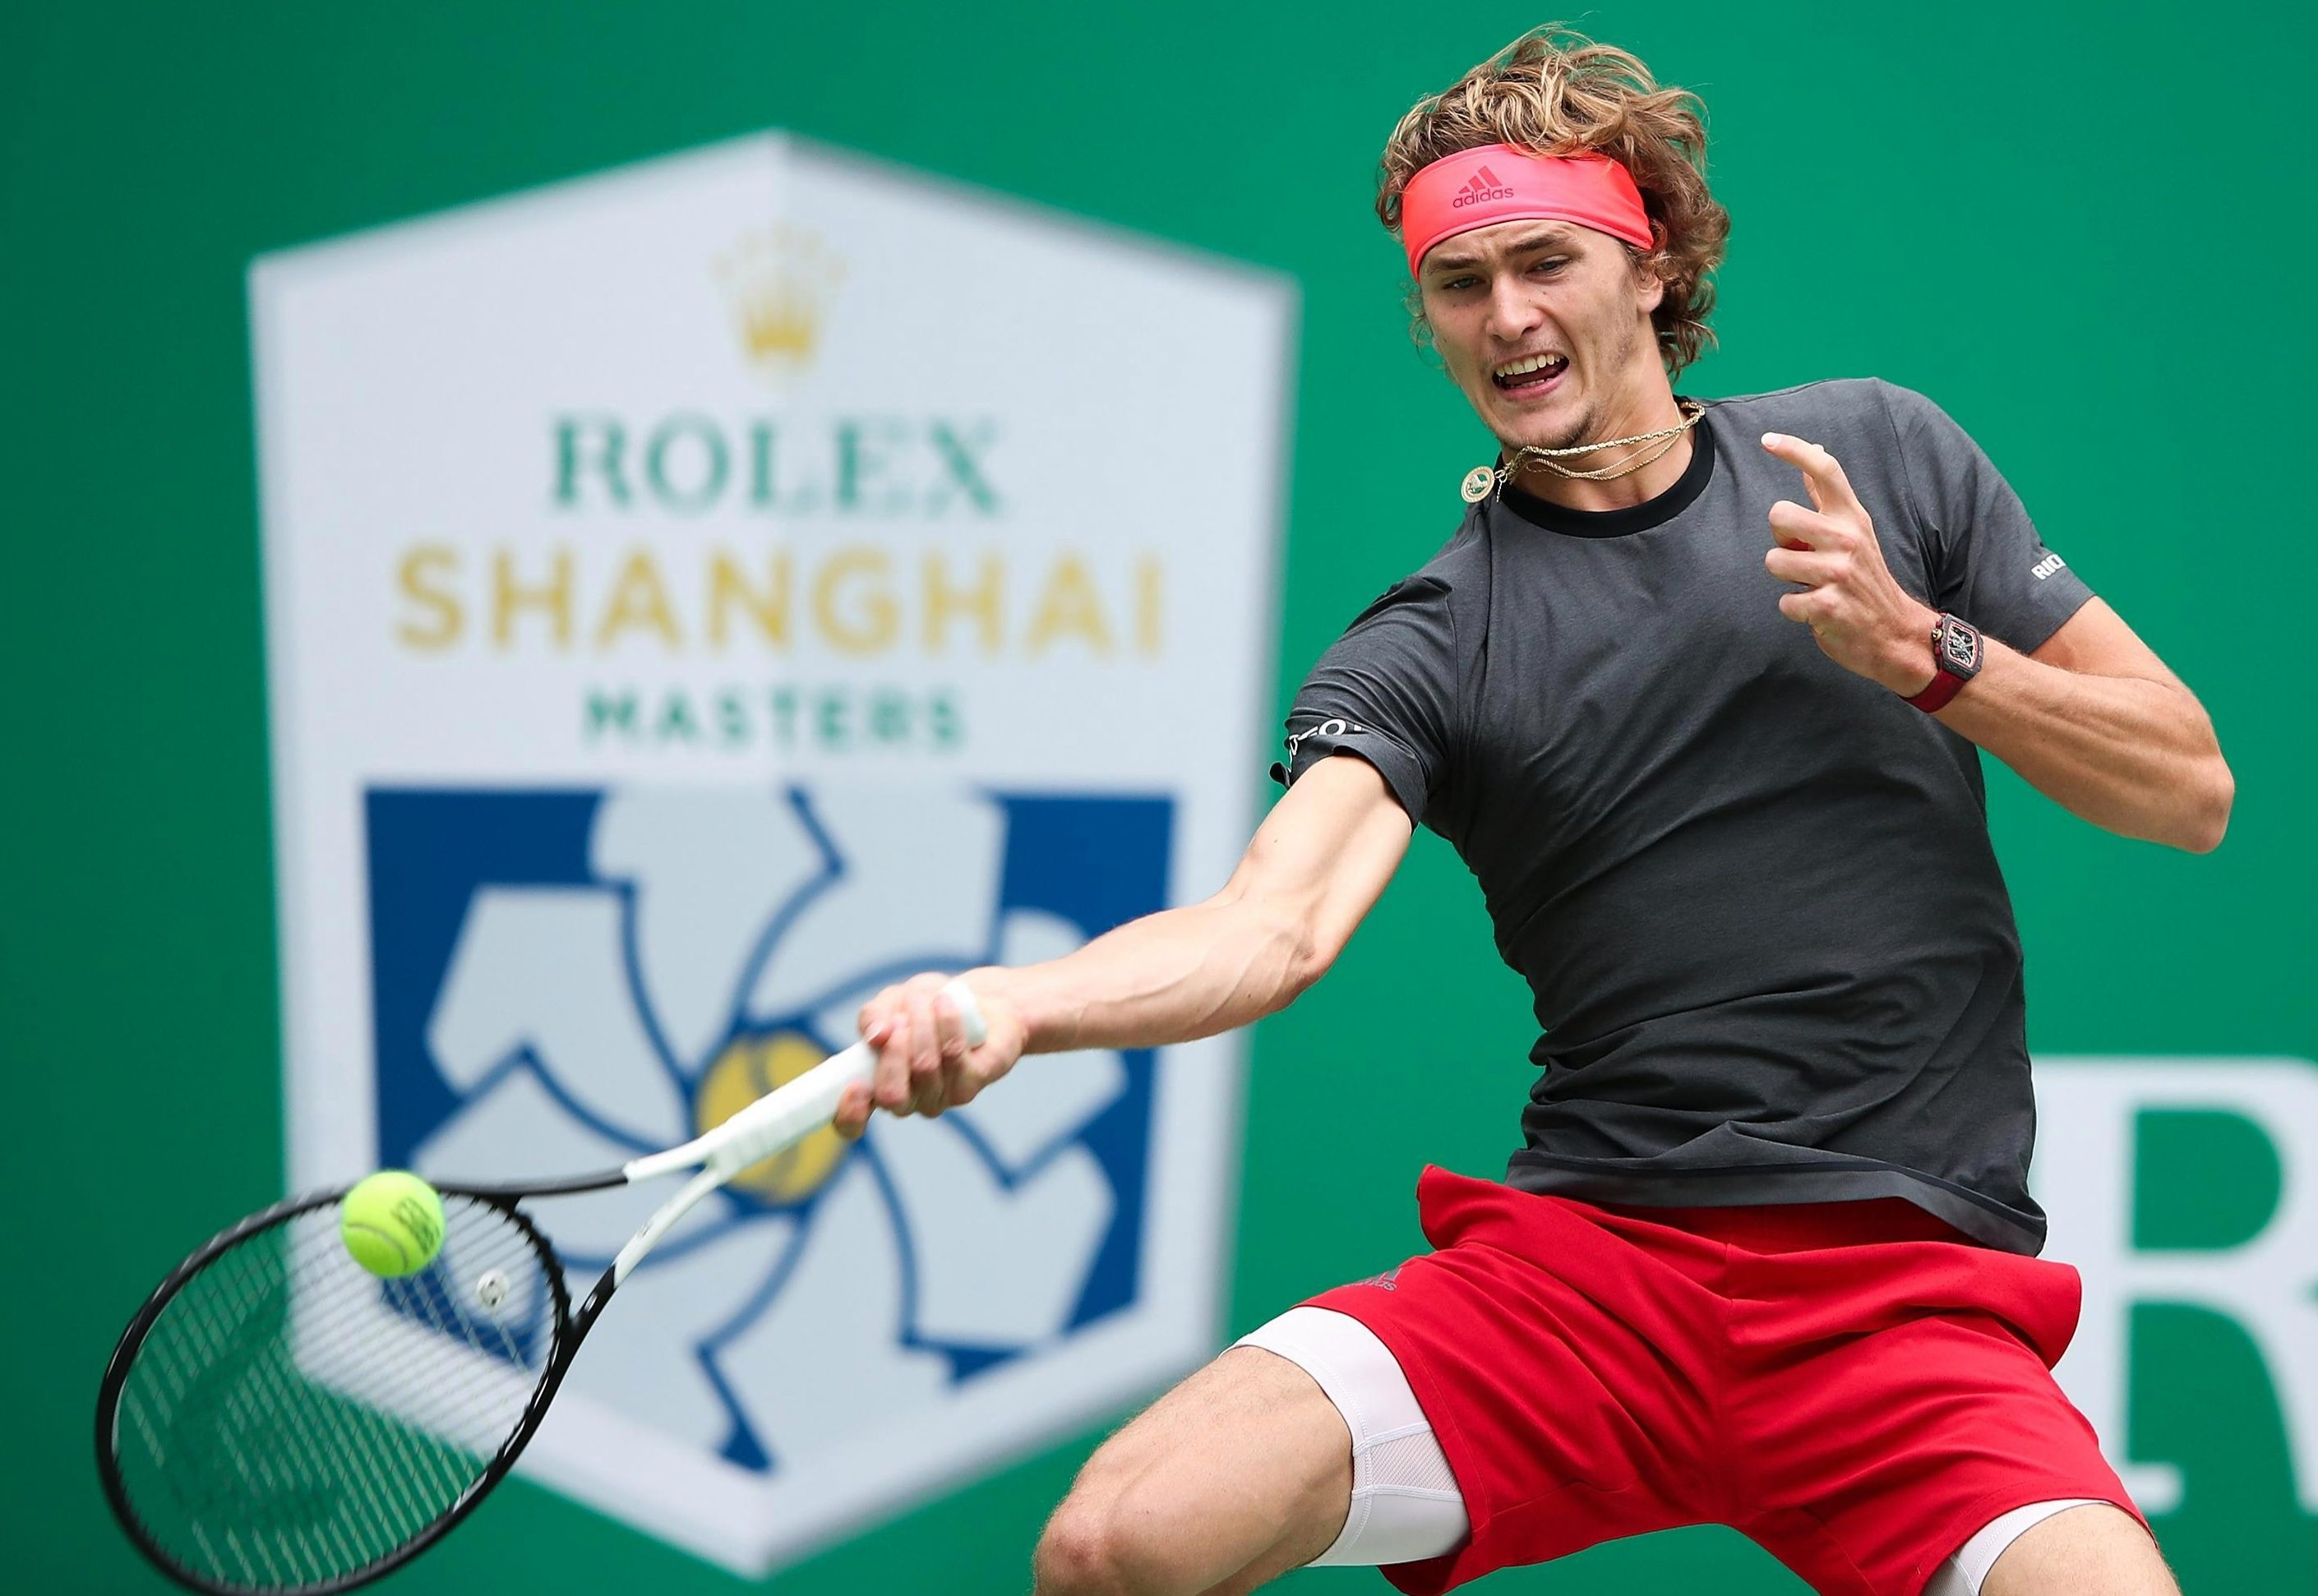 The 21-year-old German is one of the hottest prospects in men's tennis and is the fourth seed for the tournament